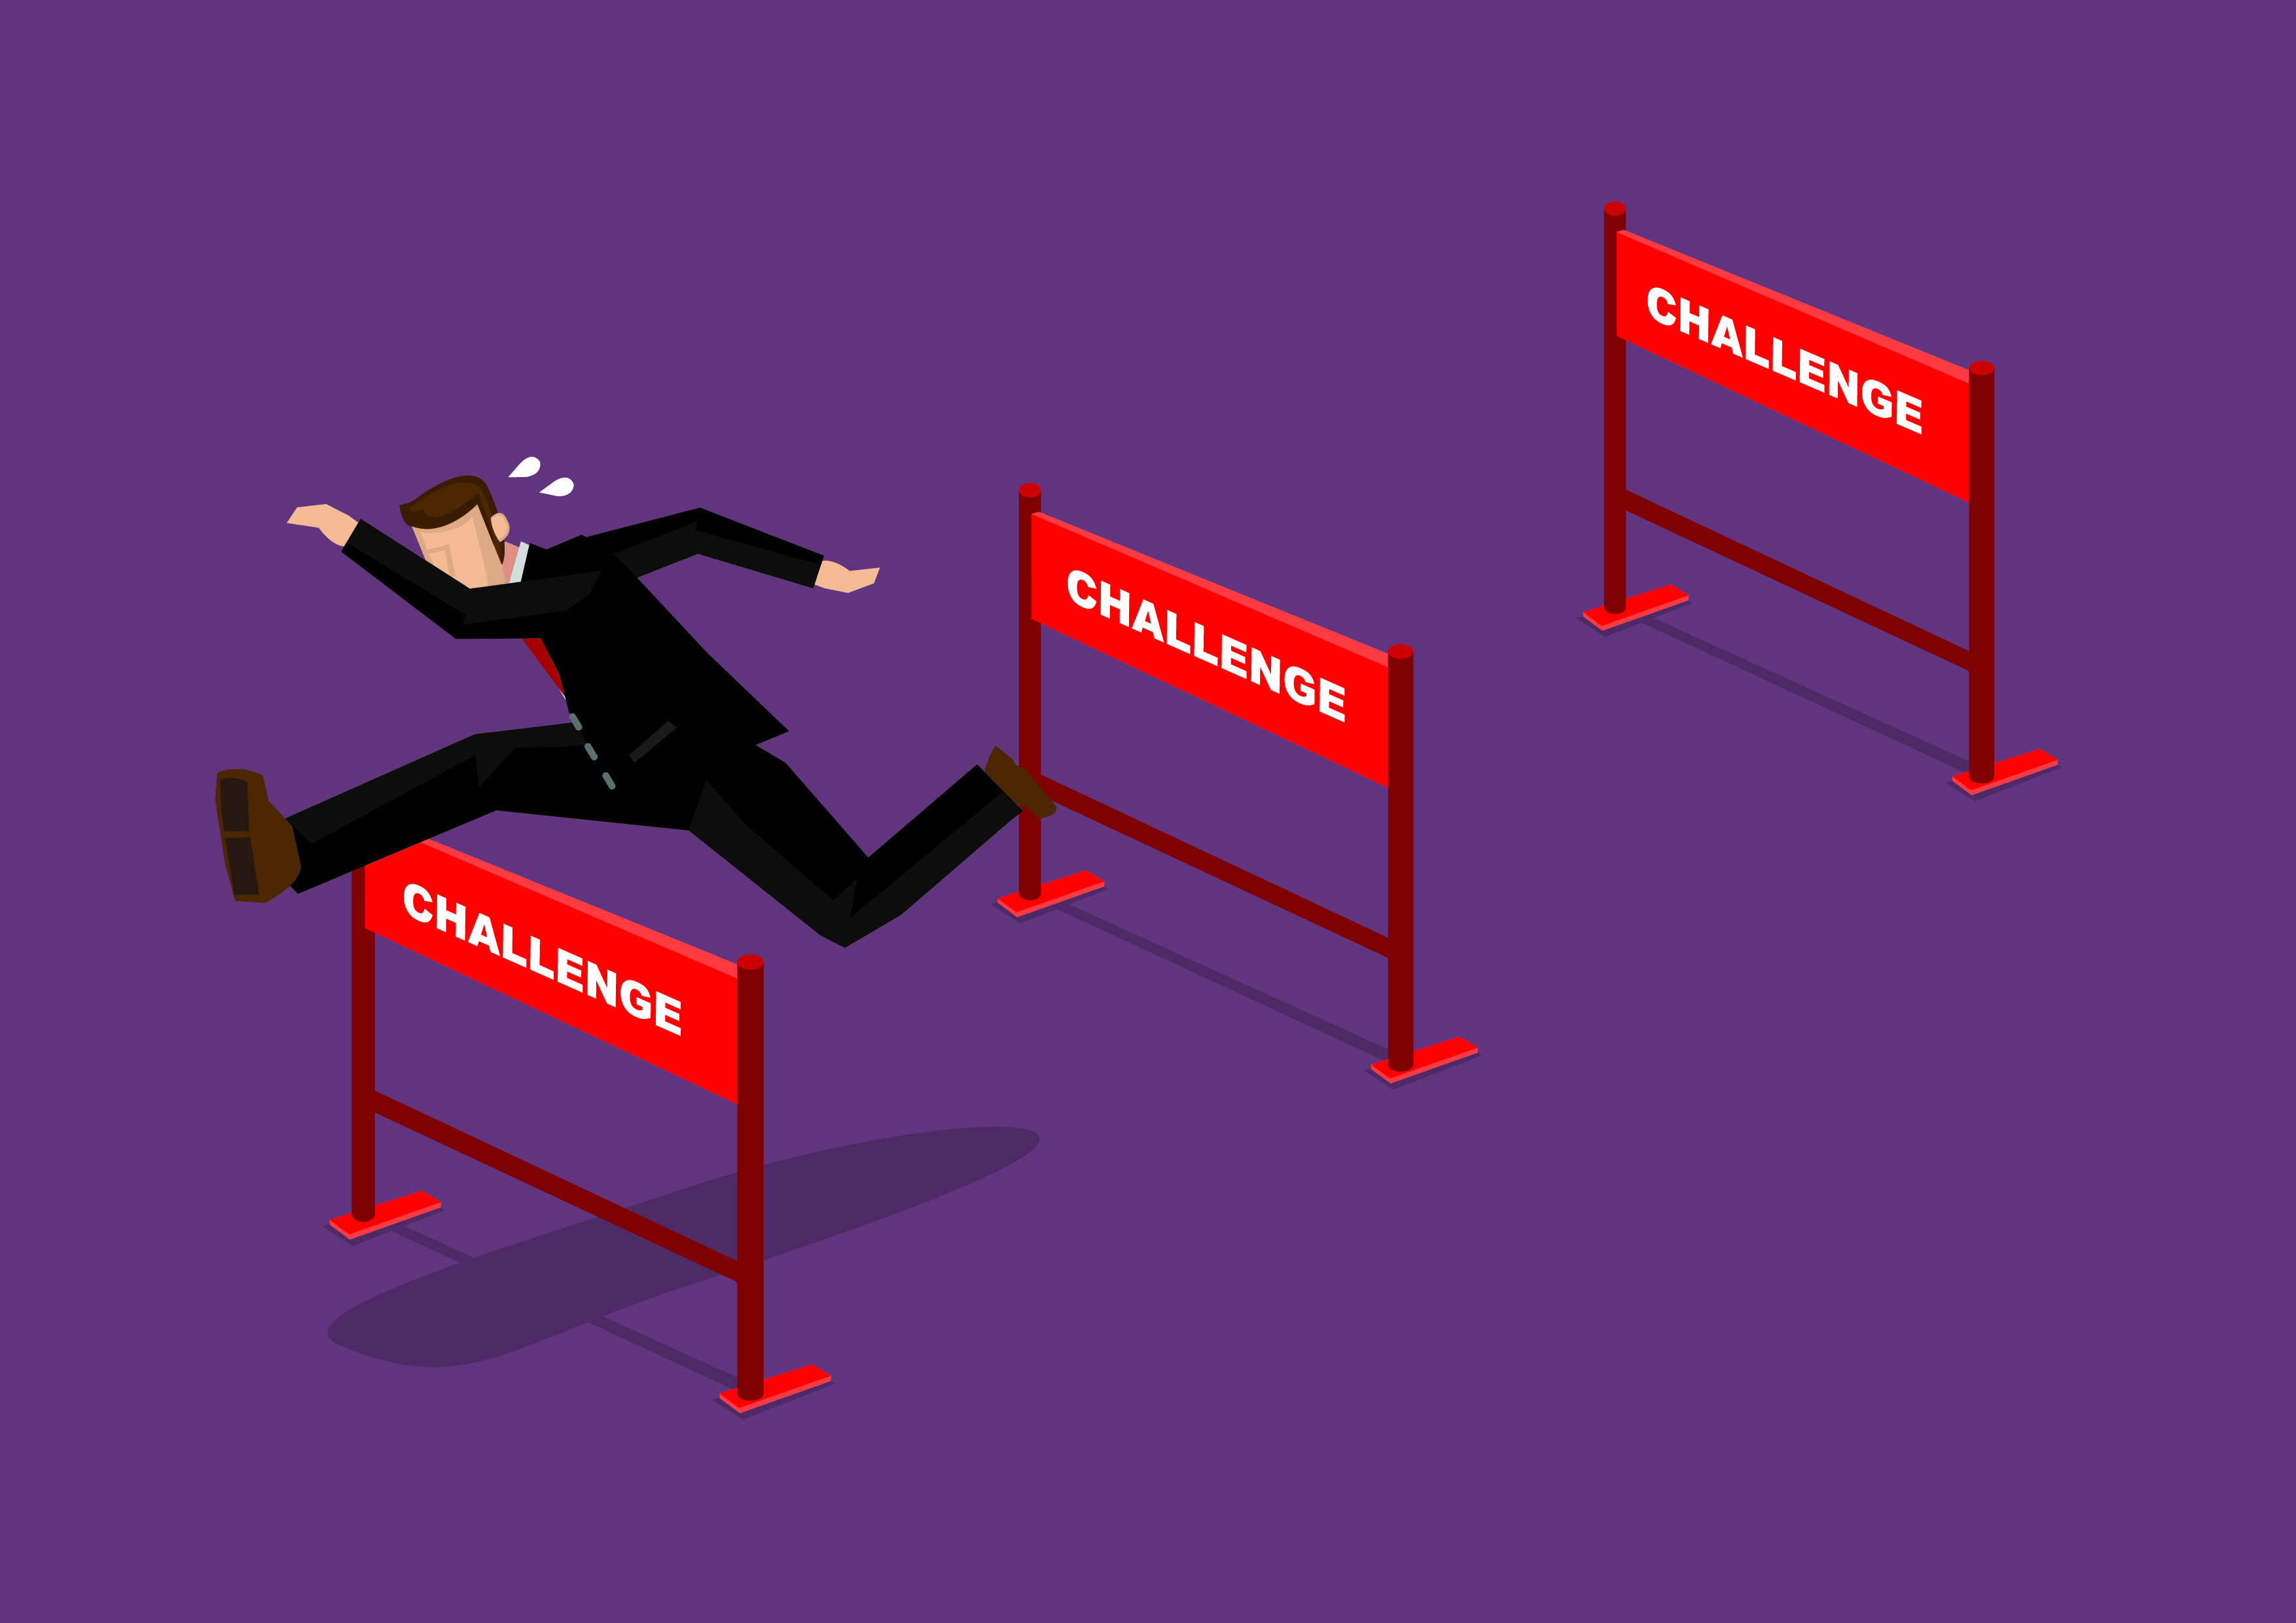 Overcoming Challenges Business Cartoon Vector Illustration